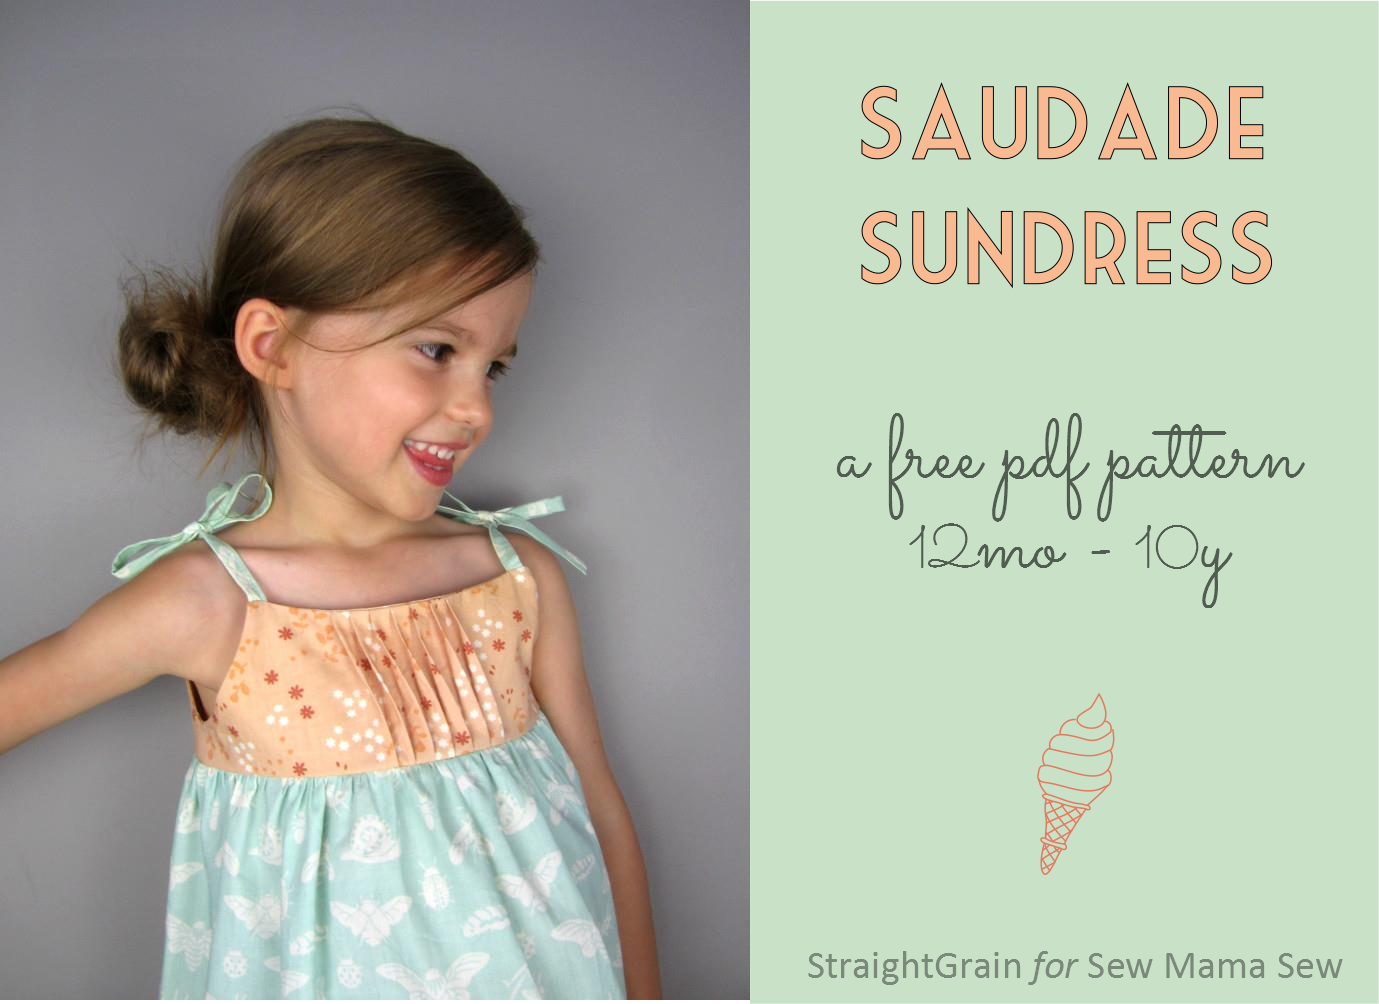 Straightgrain a blog about sewing saudade sundress free pattern a blog about sewing saudade sundress free pattern release and give jeuxipadfo Choice Image